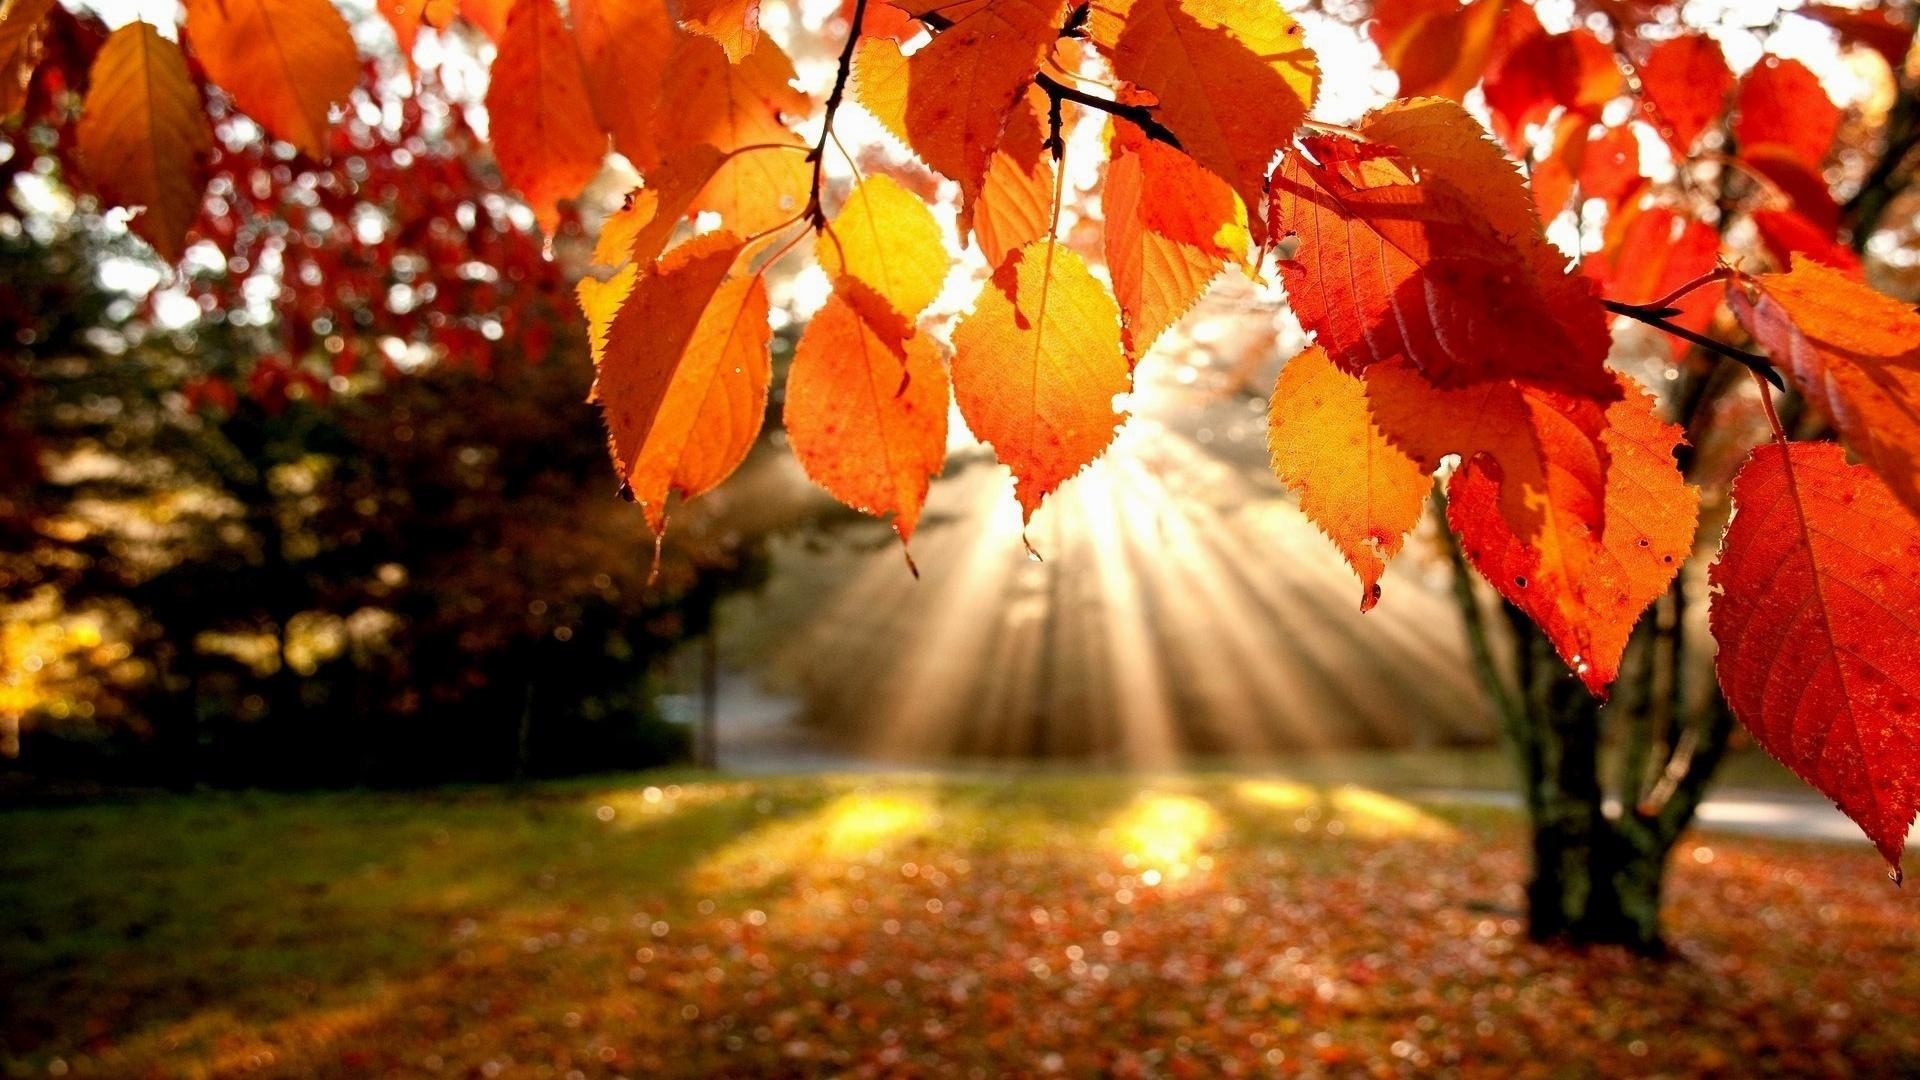 Cute Fall Wallpaper Backgrounds 60 Images